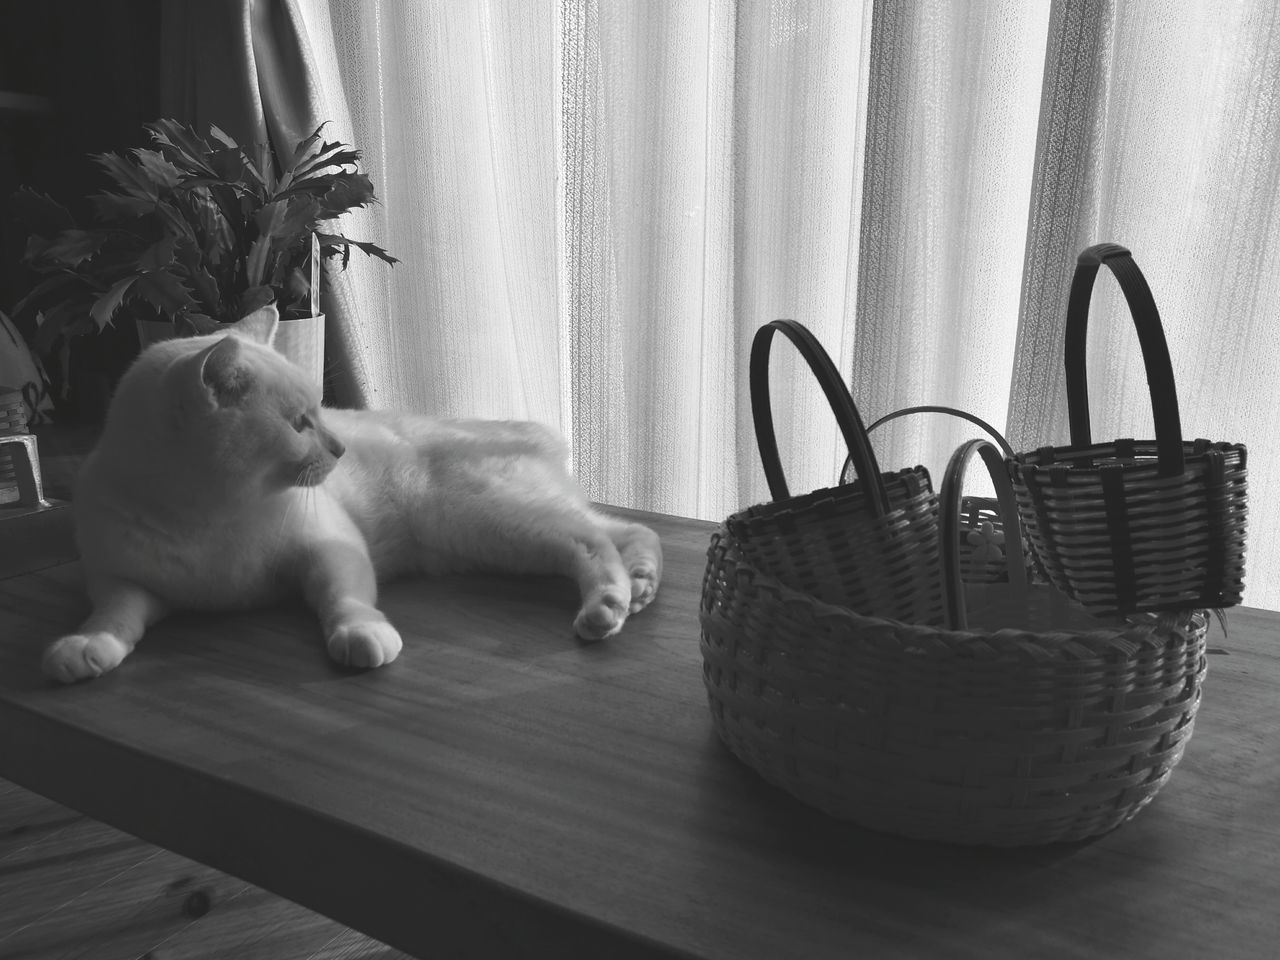 basket, curtain, pets, indoors, domestic animals, dog, one animal, home interior, animal themes, mammal, no people, day, close-up